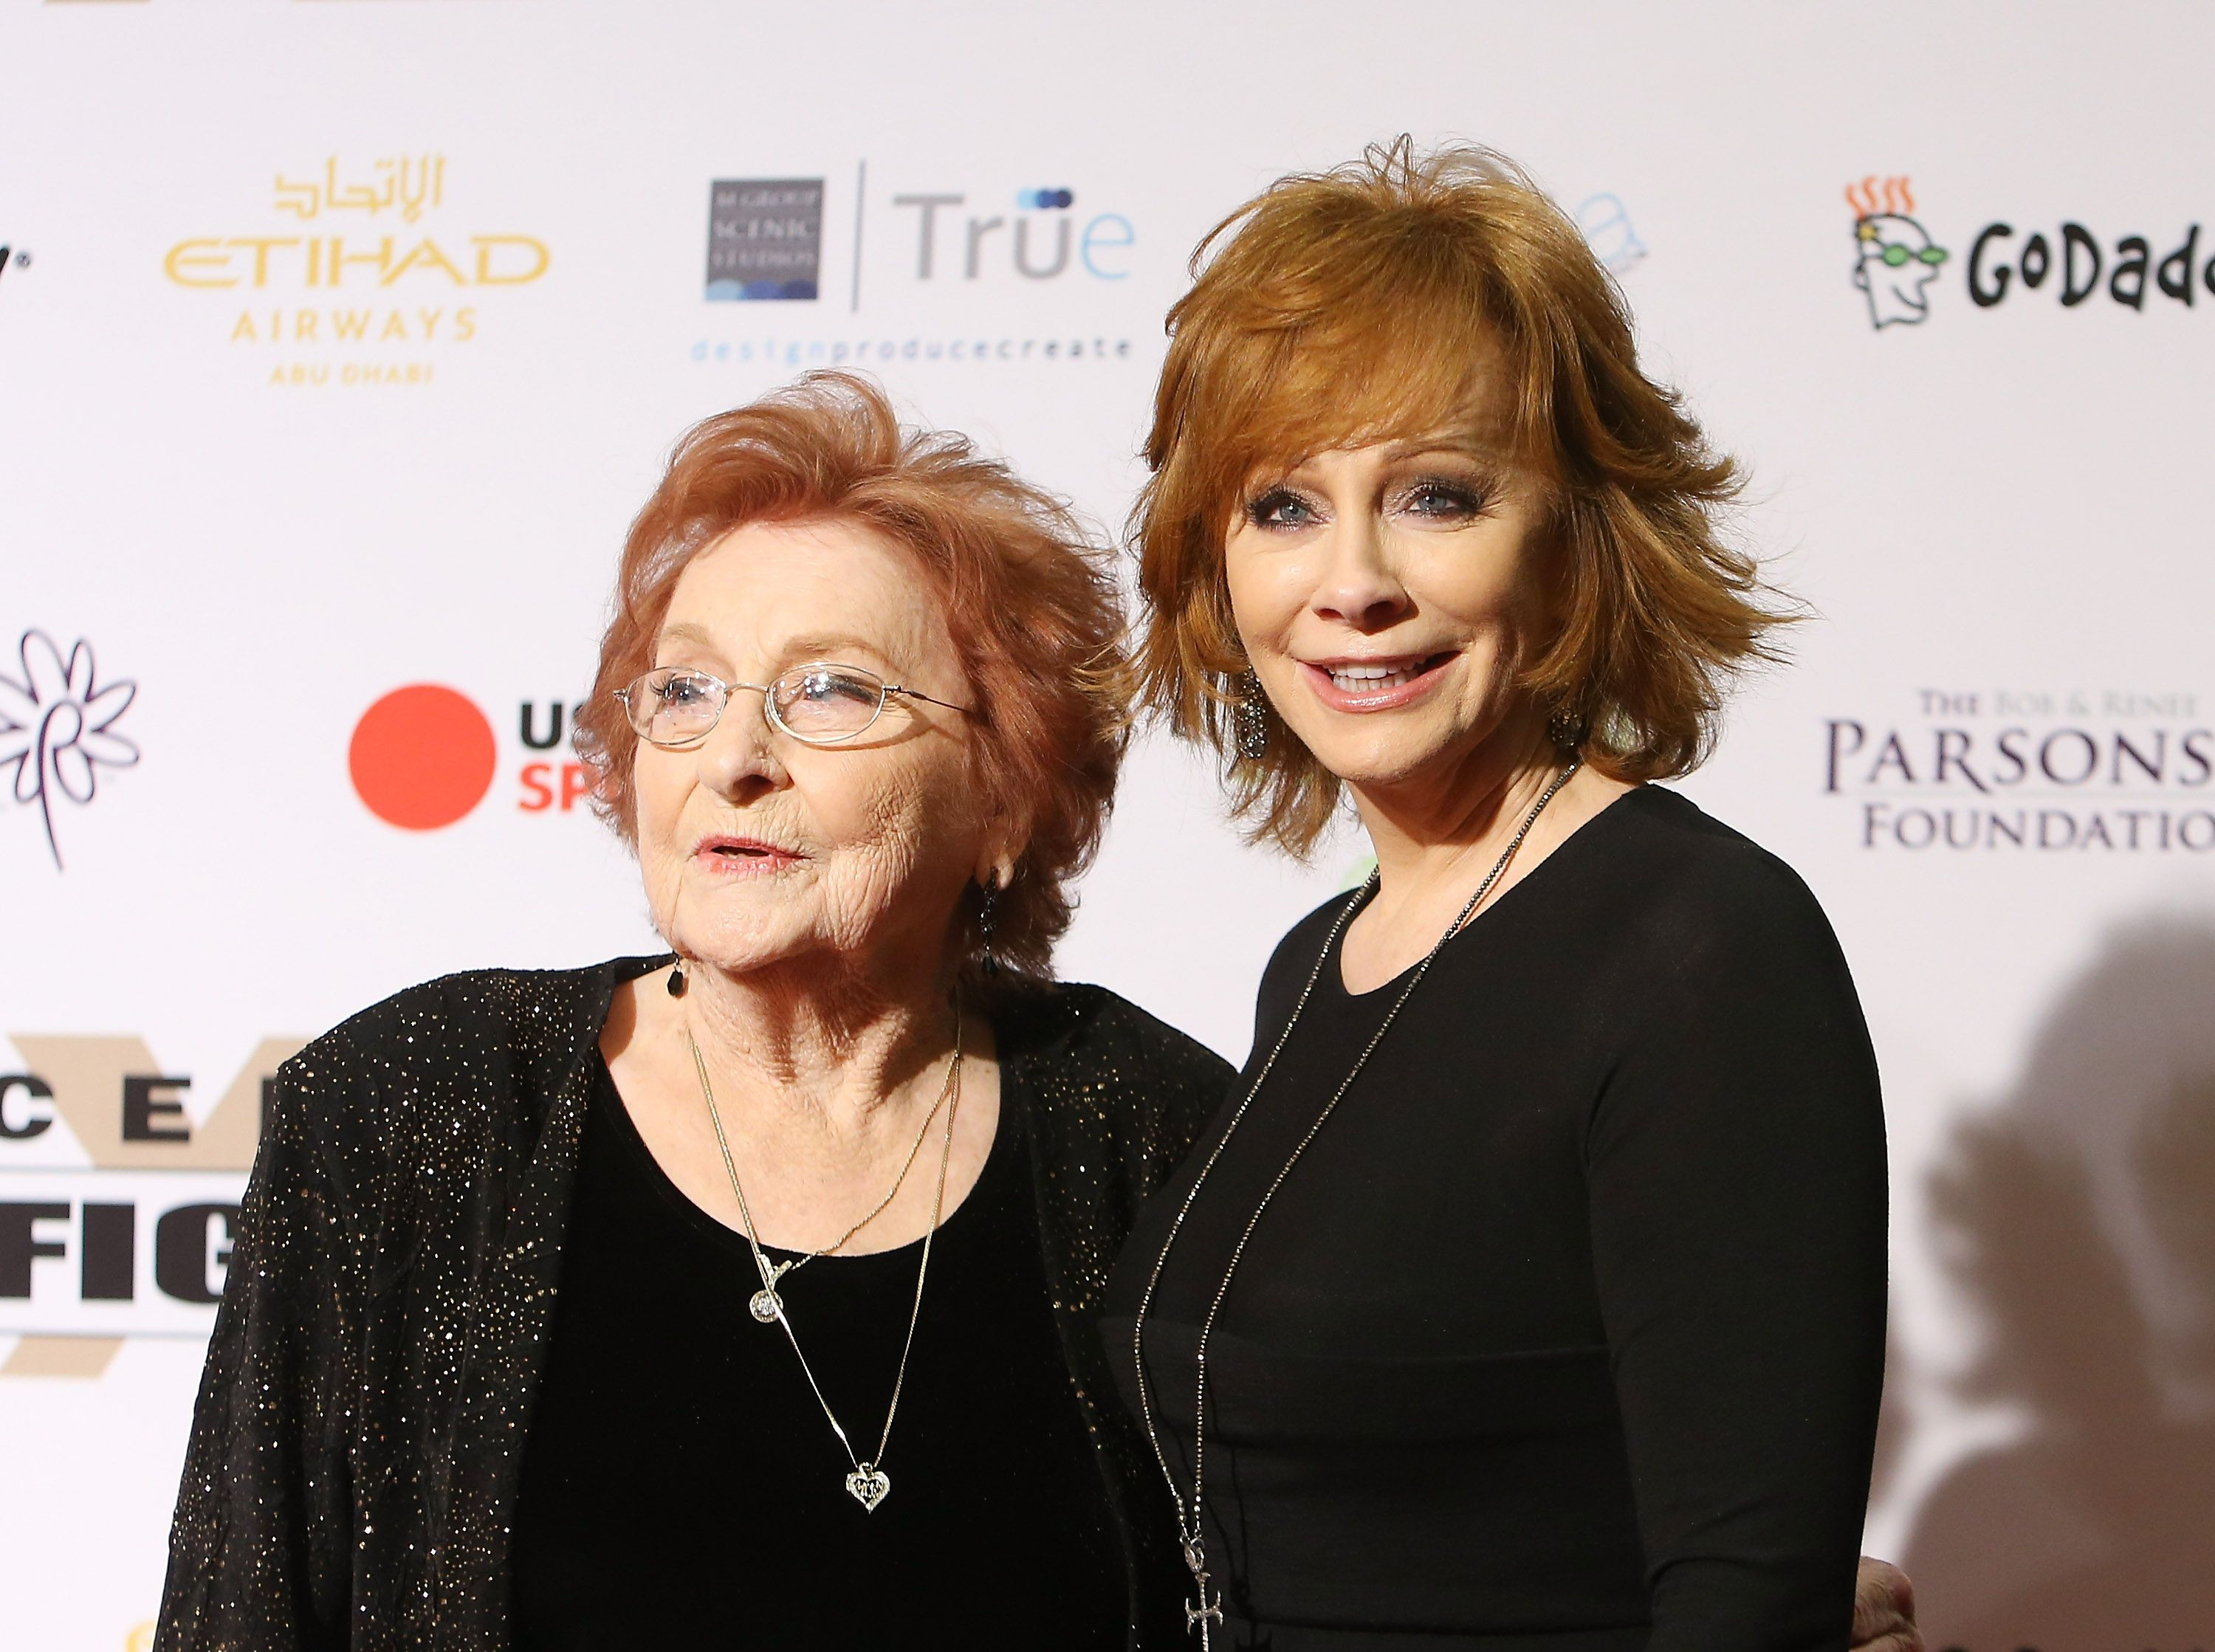 Jacqueline and Reba McEntire at Muhammad Ali's 22nd Celebrity Fight Night on April 9, 2016, in Phoenix, Arizona | Photo: Michael Tran/FilmMagic/Getty Images